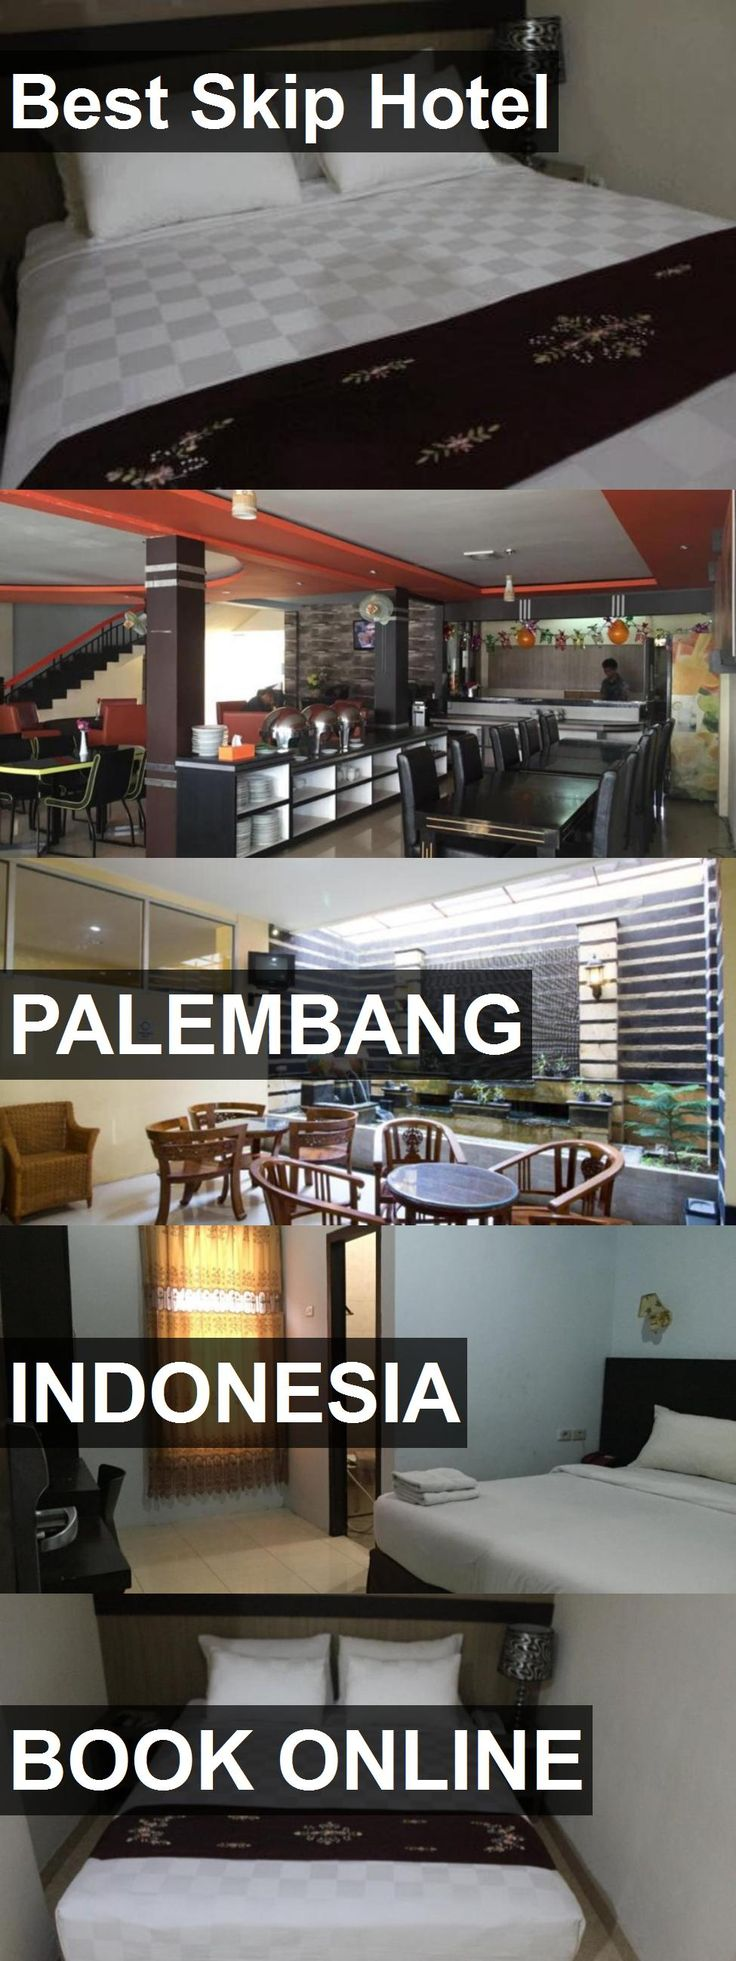 Best Skip Hotel in Palembang, Indonesia. For more information, photos, reviews and best prices please follow the link. #Indonesia #Palembang #travel #vacation #hotel